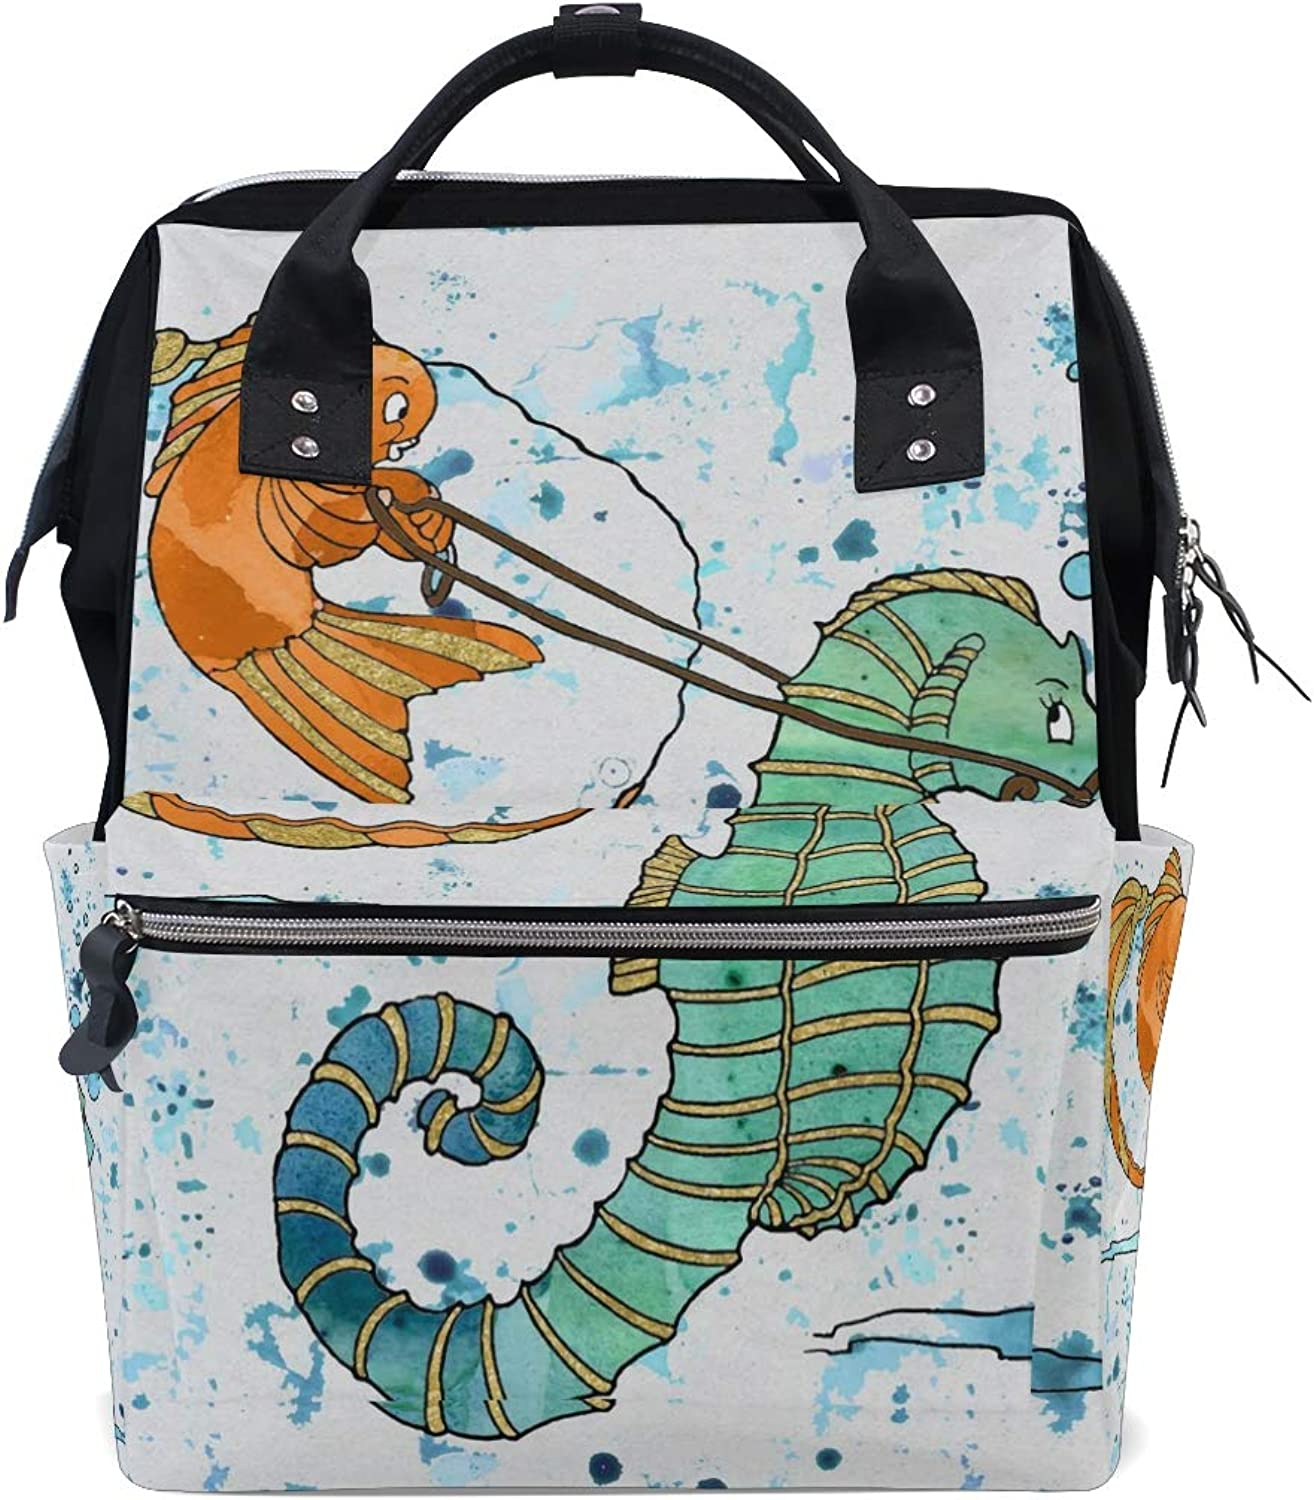 FANTAZIO Backpacks Funny Seahorse goldfish Watercolor Painting School Bag Canvas Daypack